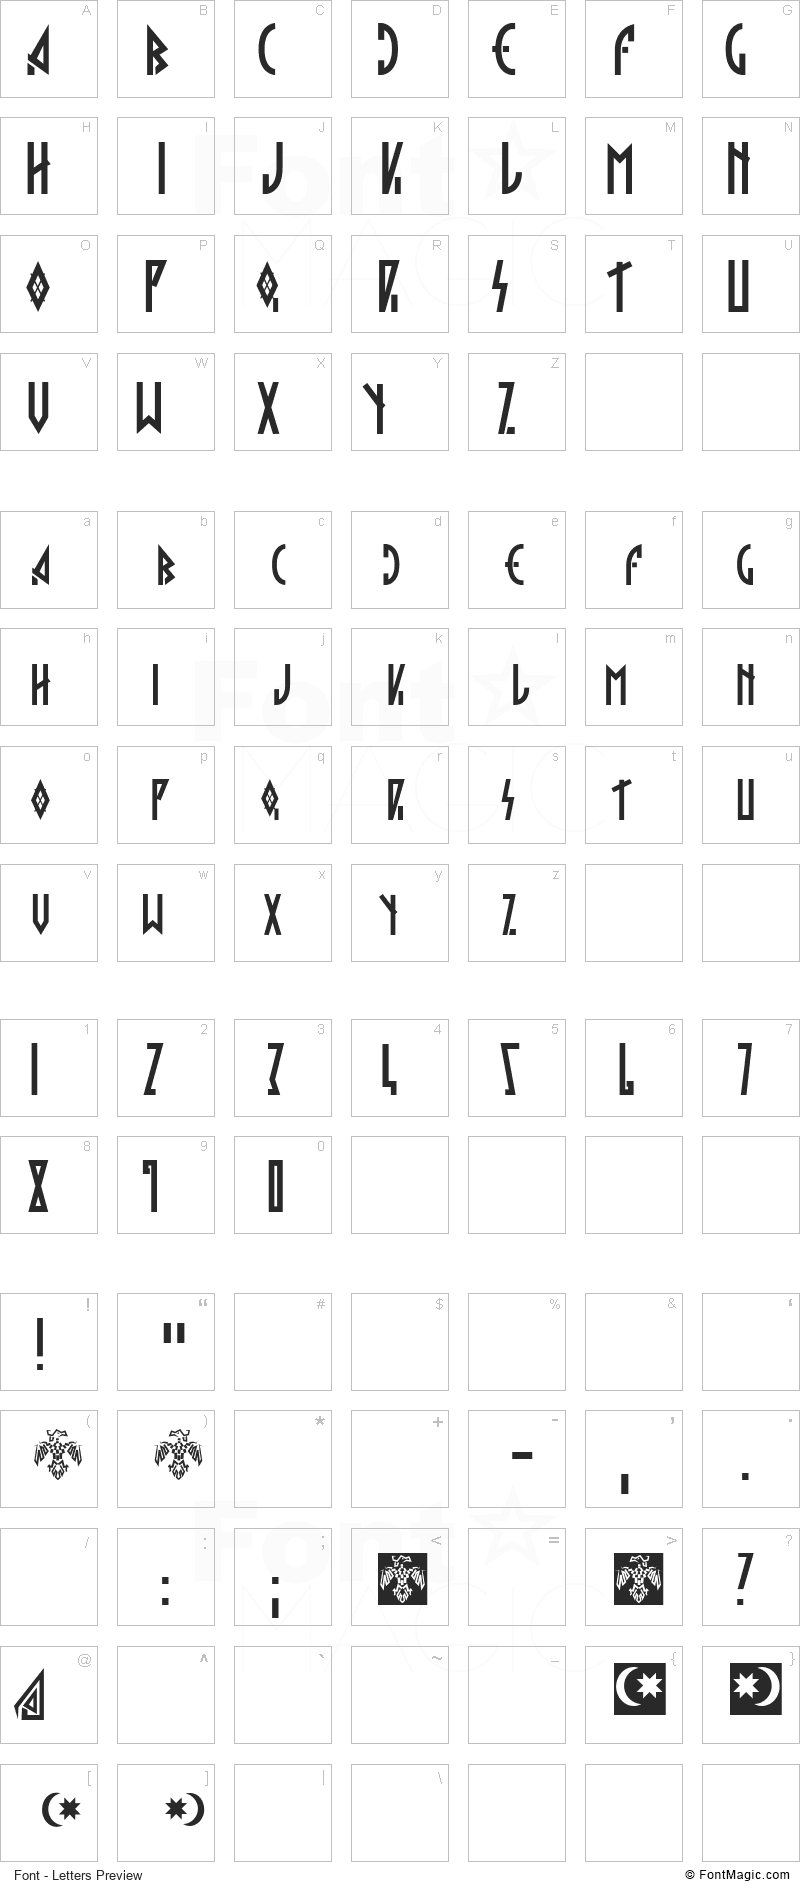 Hargita Font - All Latters Preview Chart